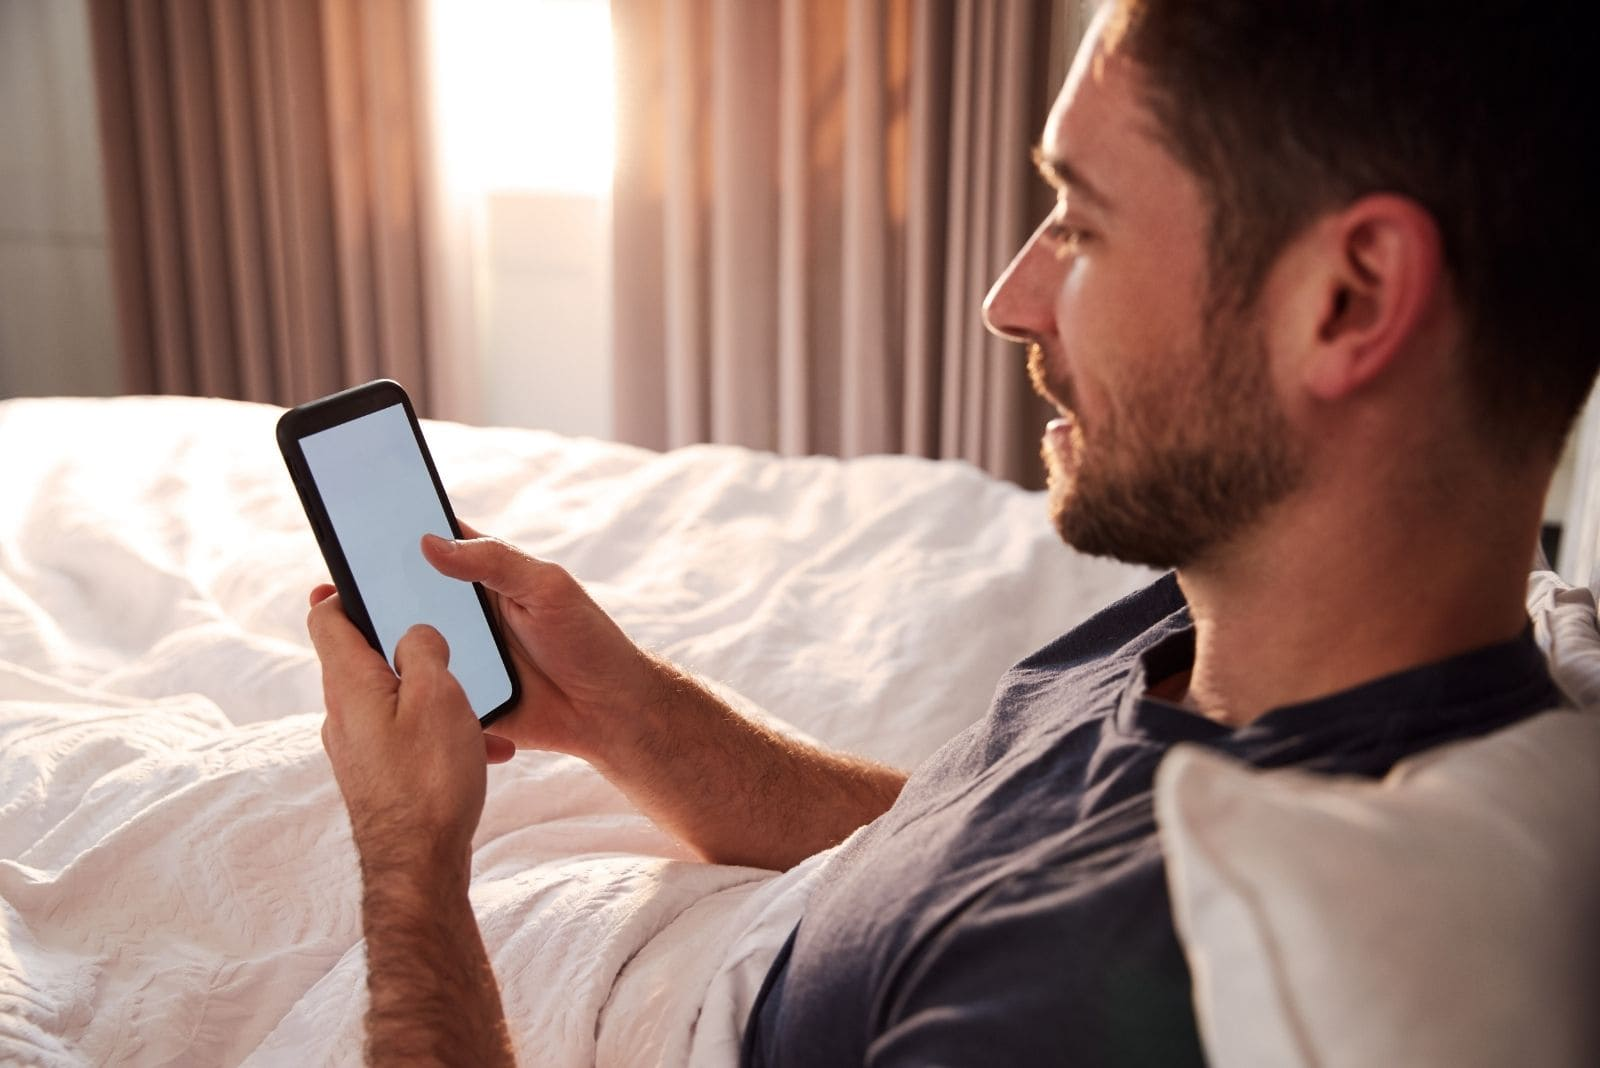 man sitting on bed with his cellphone on sideview inside bedroom